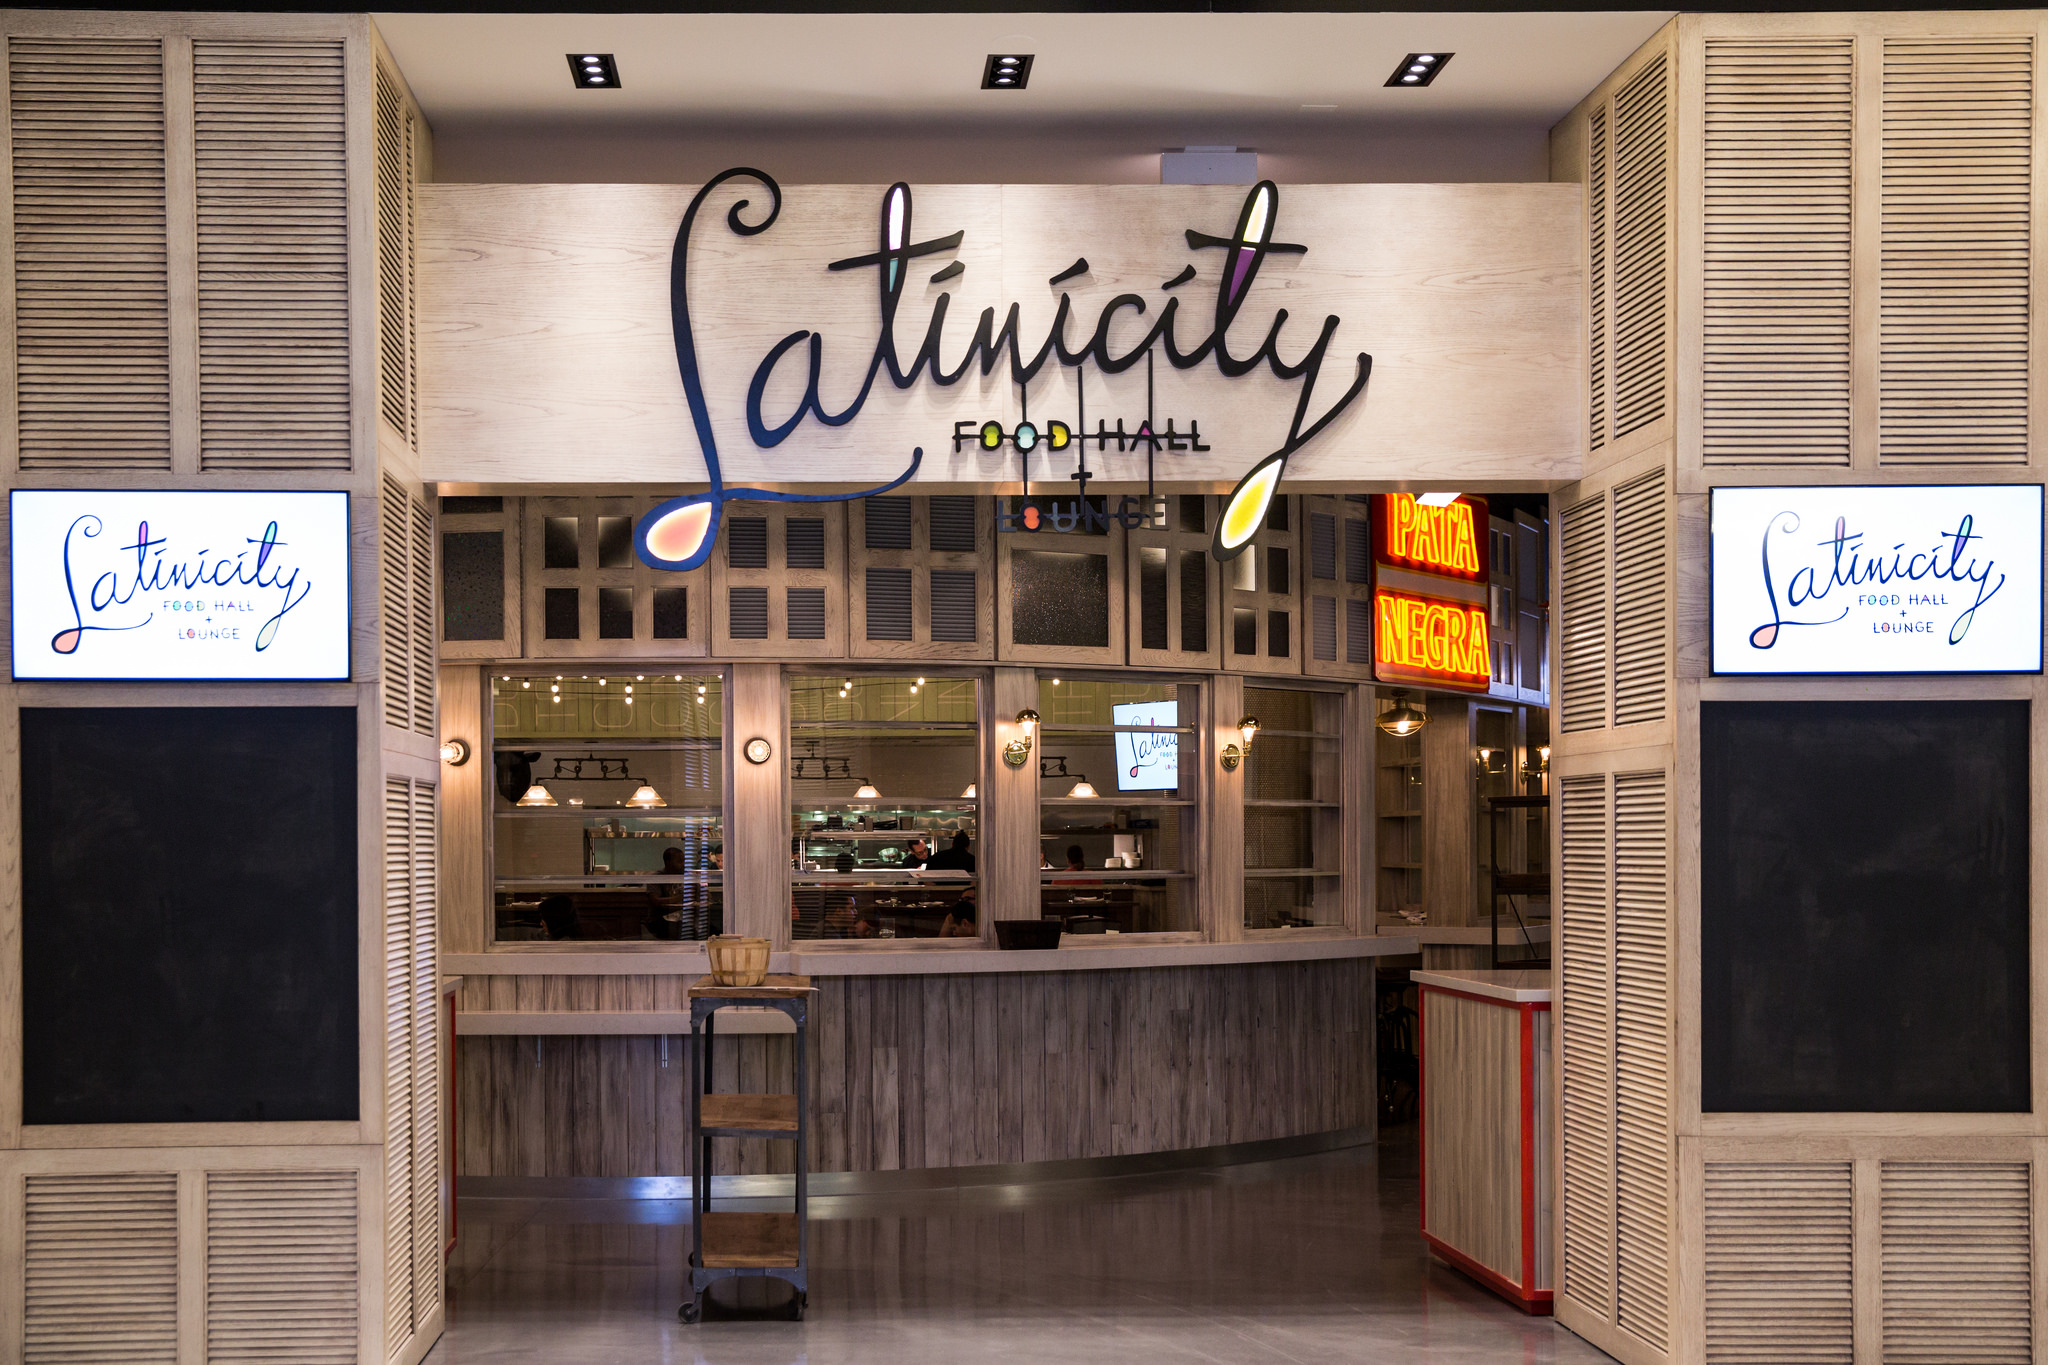 There's a new beer hall coming to Latinicity.